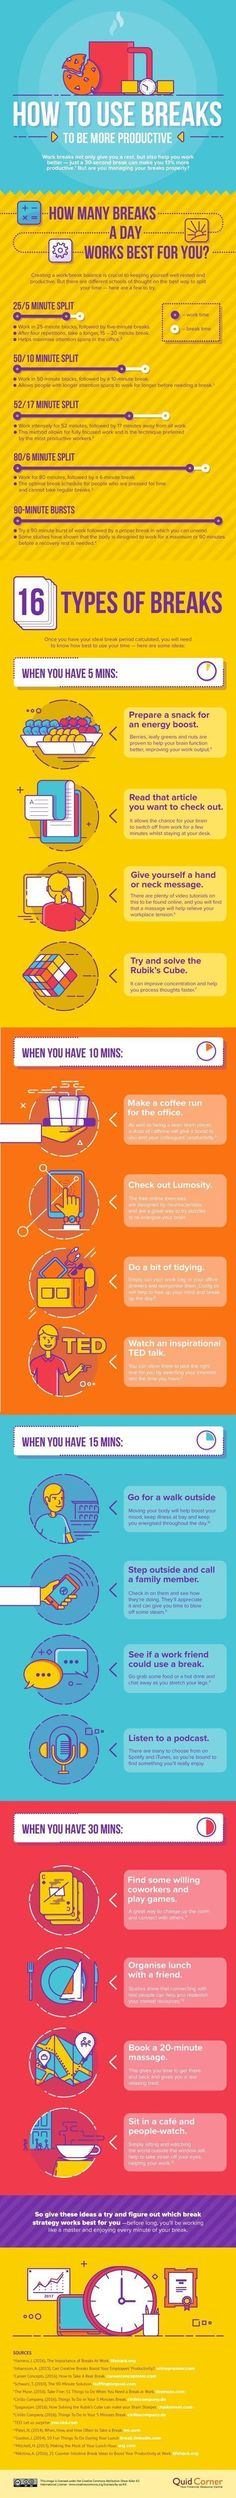 How to be your more productive, take a step back from your work. Learn to take breaks, every hour.